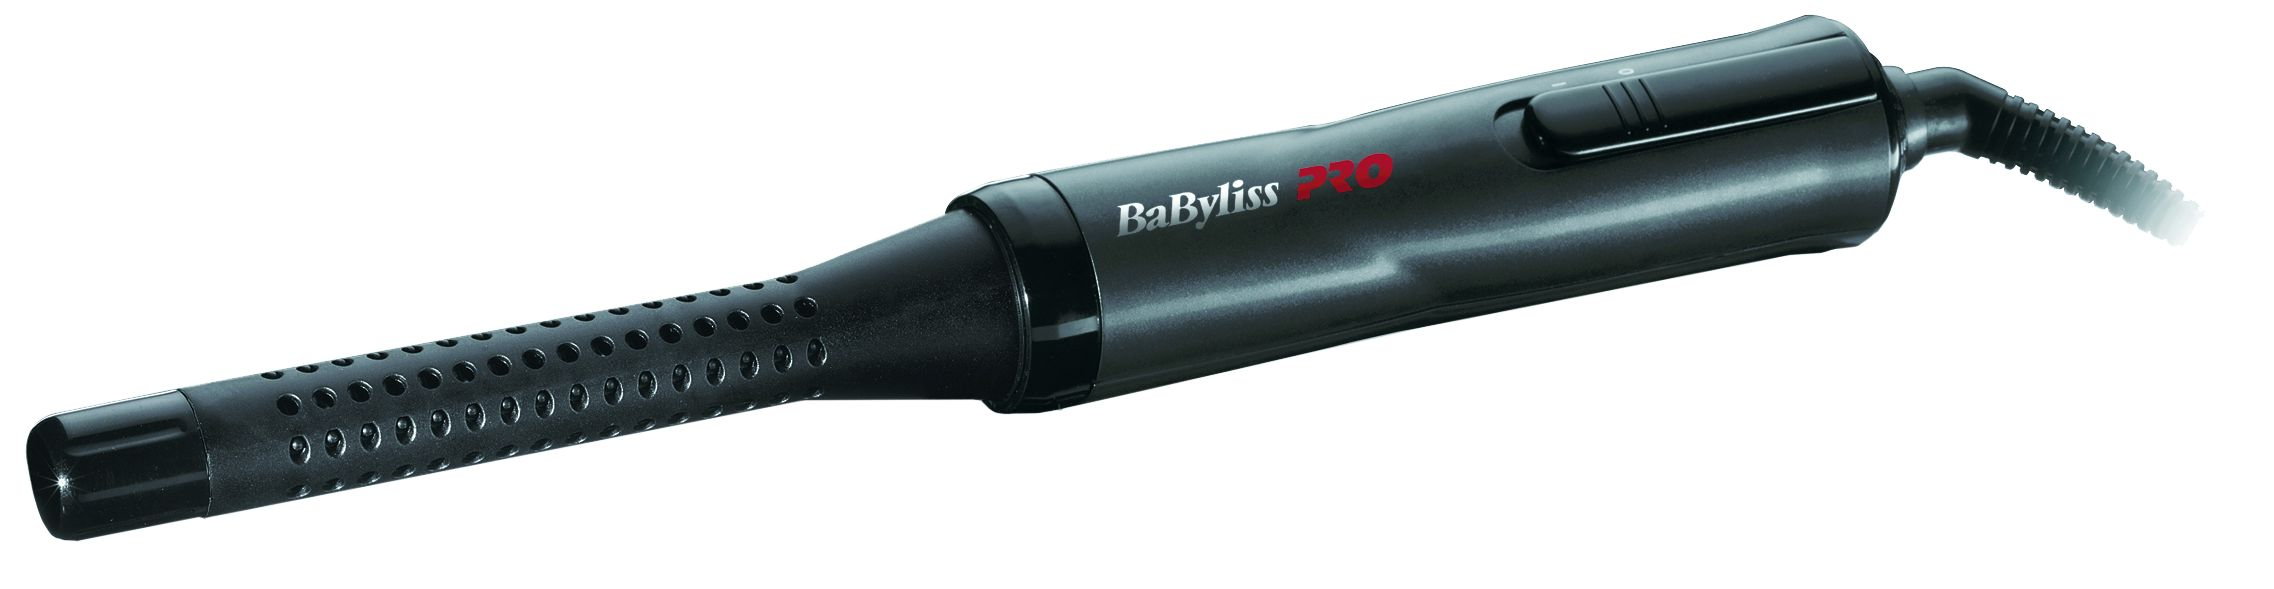 Babyliss Pro MAGIC STYLAIR Airstyler 18 mm